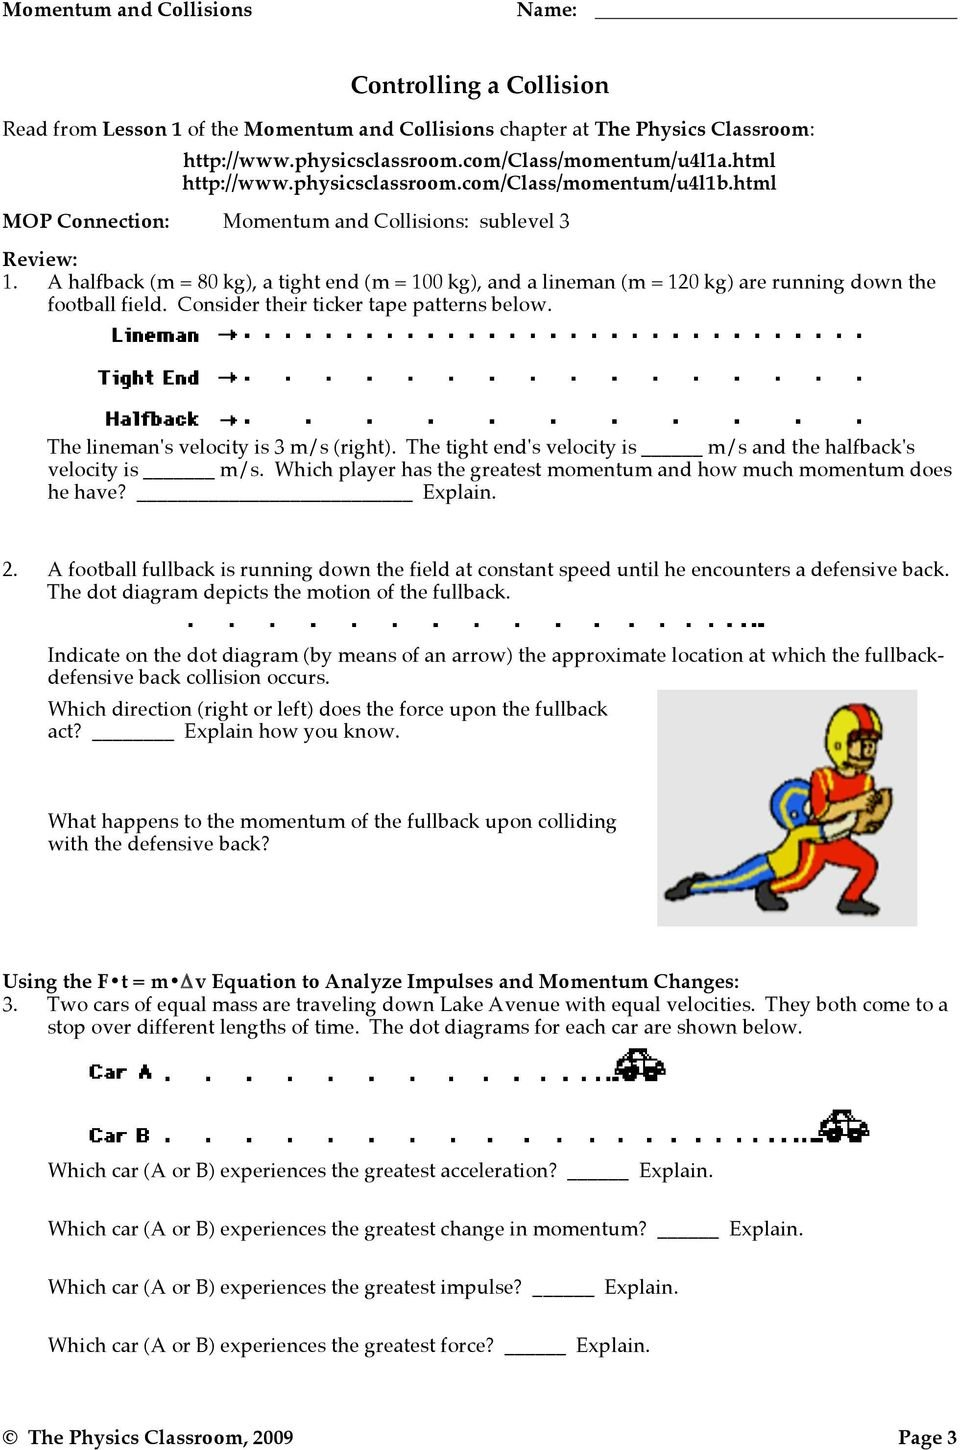 Momentum Impulse And Momentum Change  Pdf Intended For Momentum And Collisions Worksheet Answers Physics Classroom